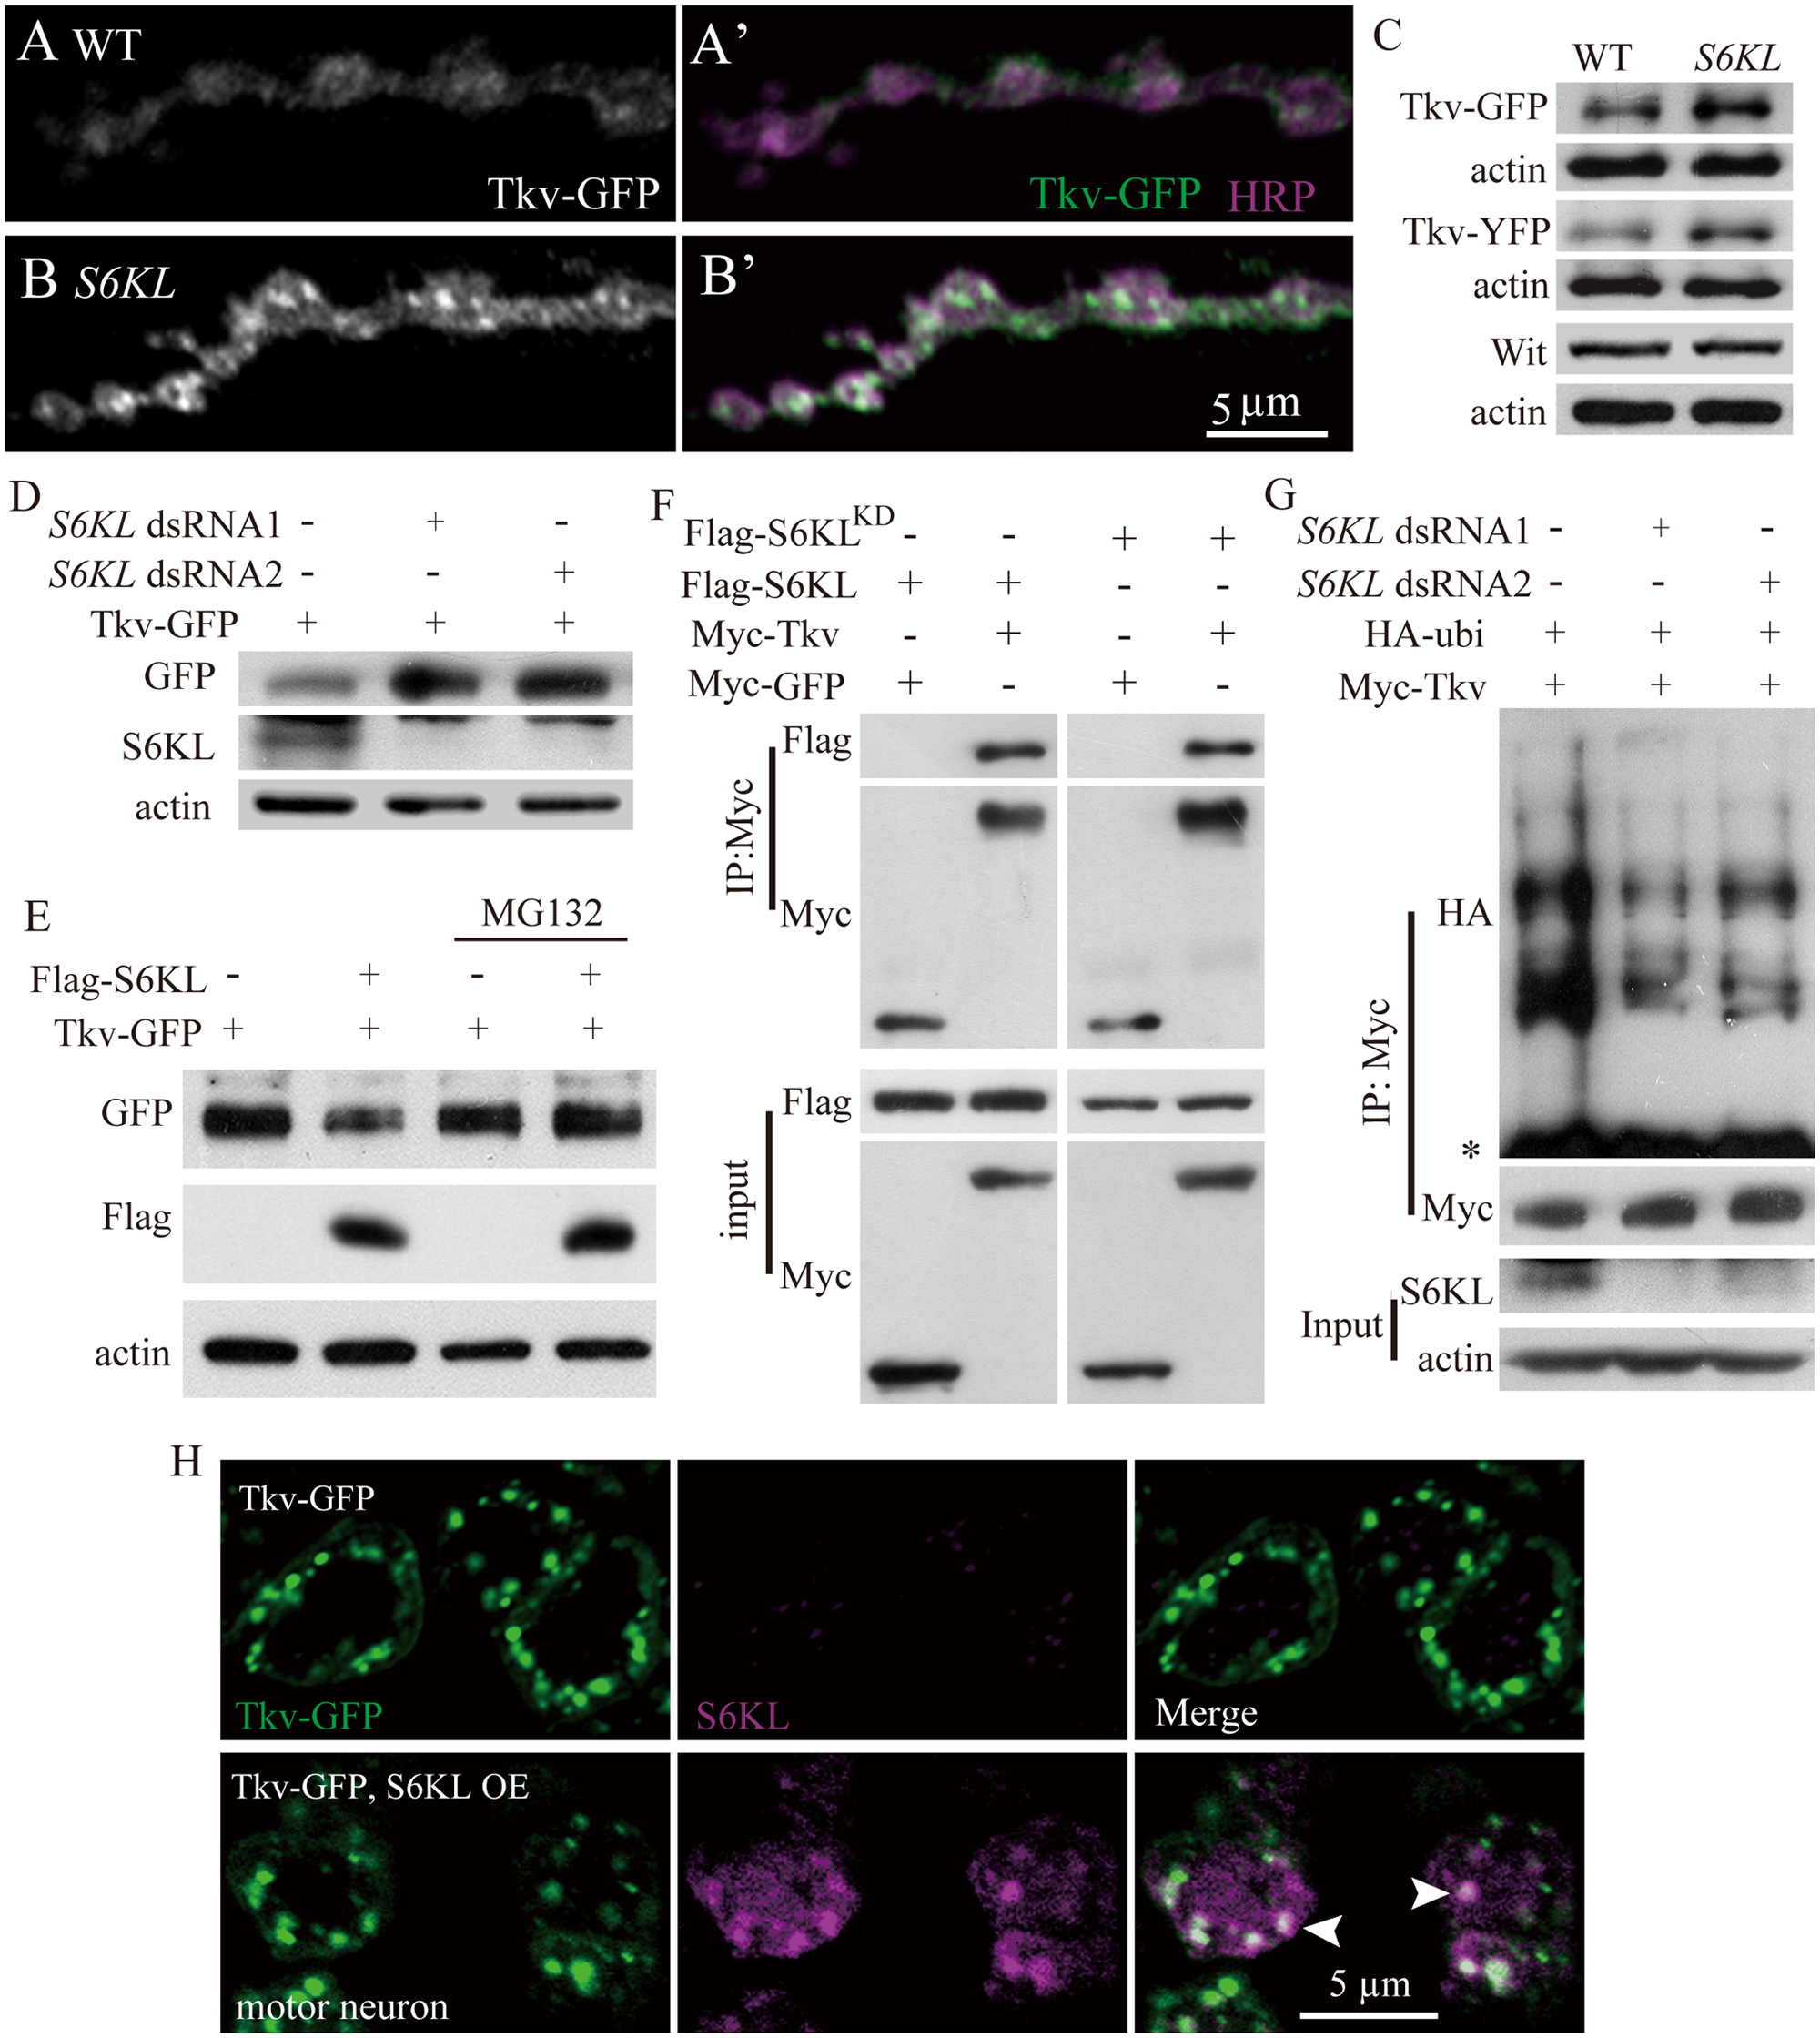 Negative regulation of Tkv protein level by S6KL via proteasomal degradation pathway.